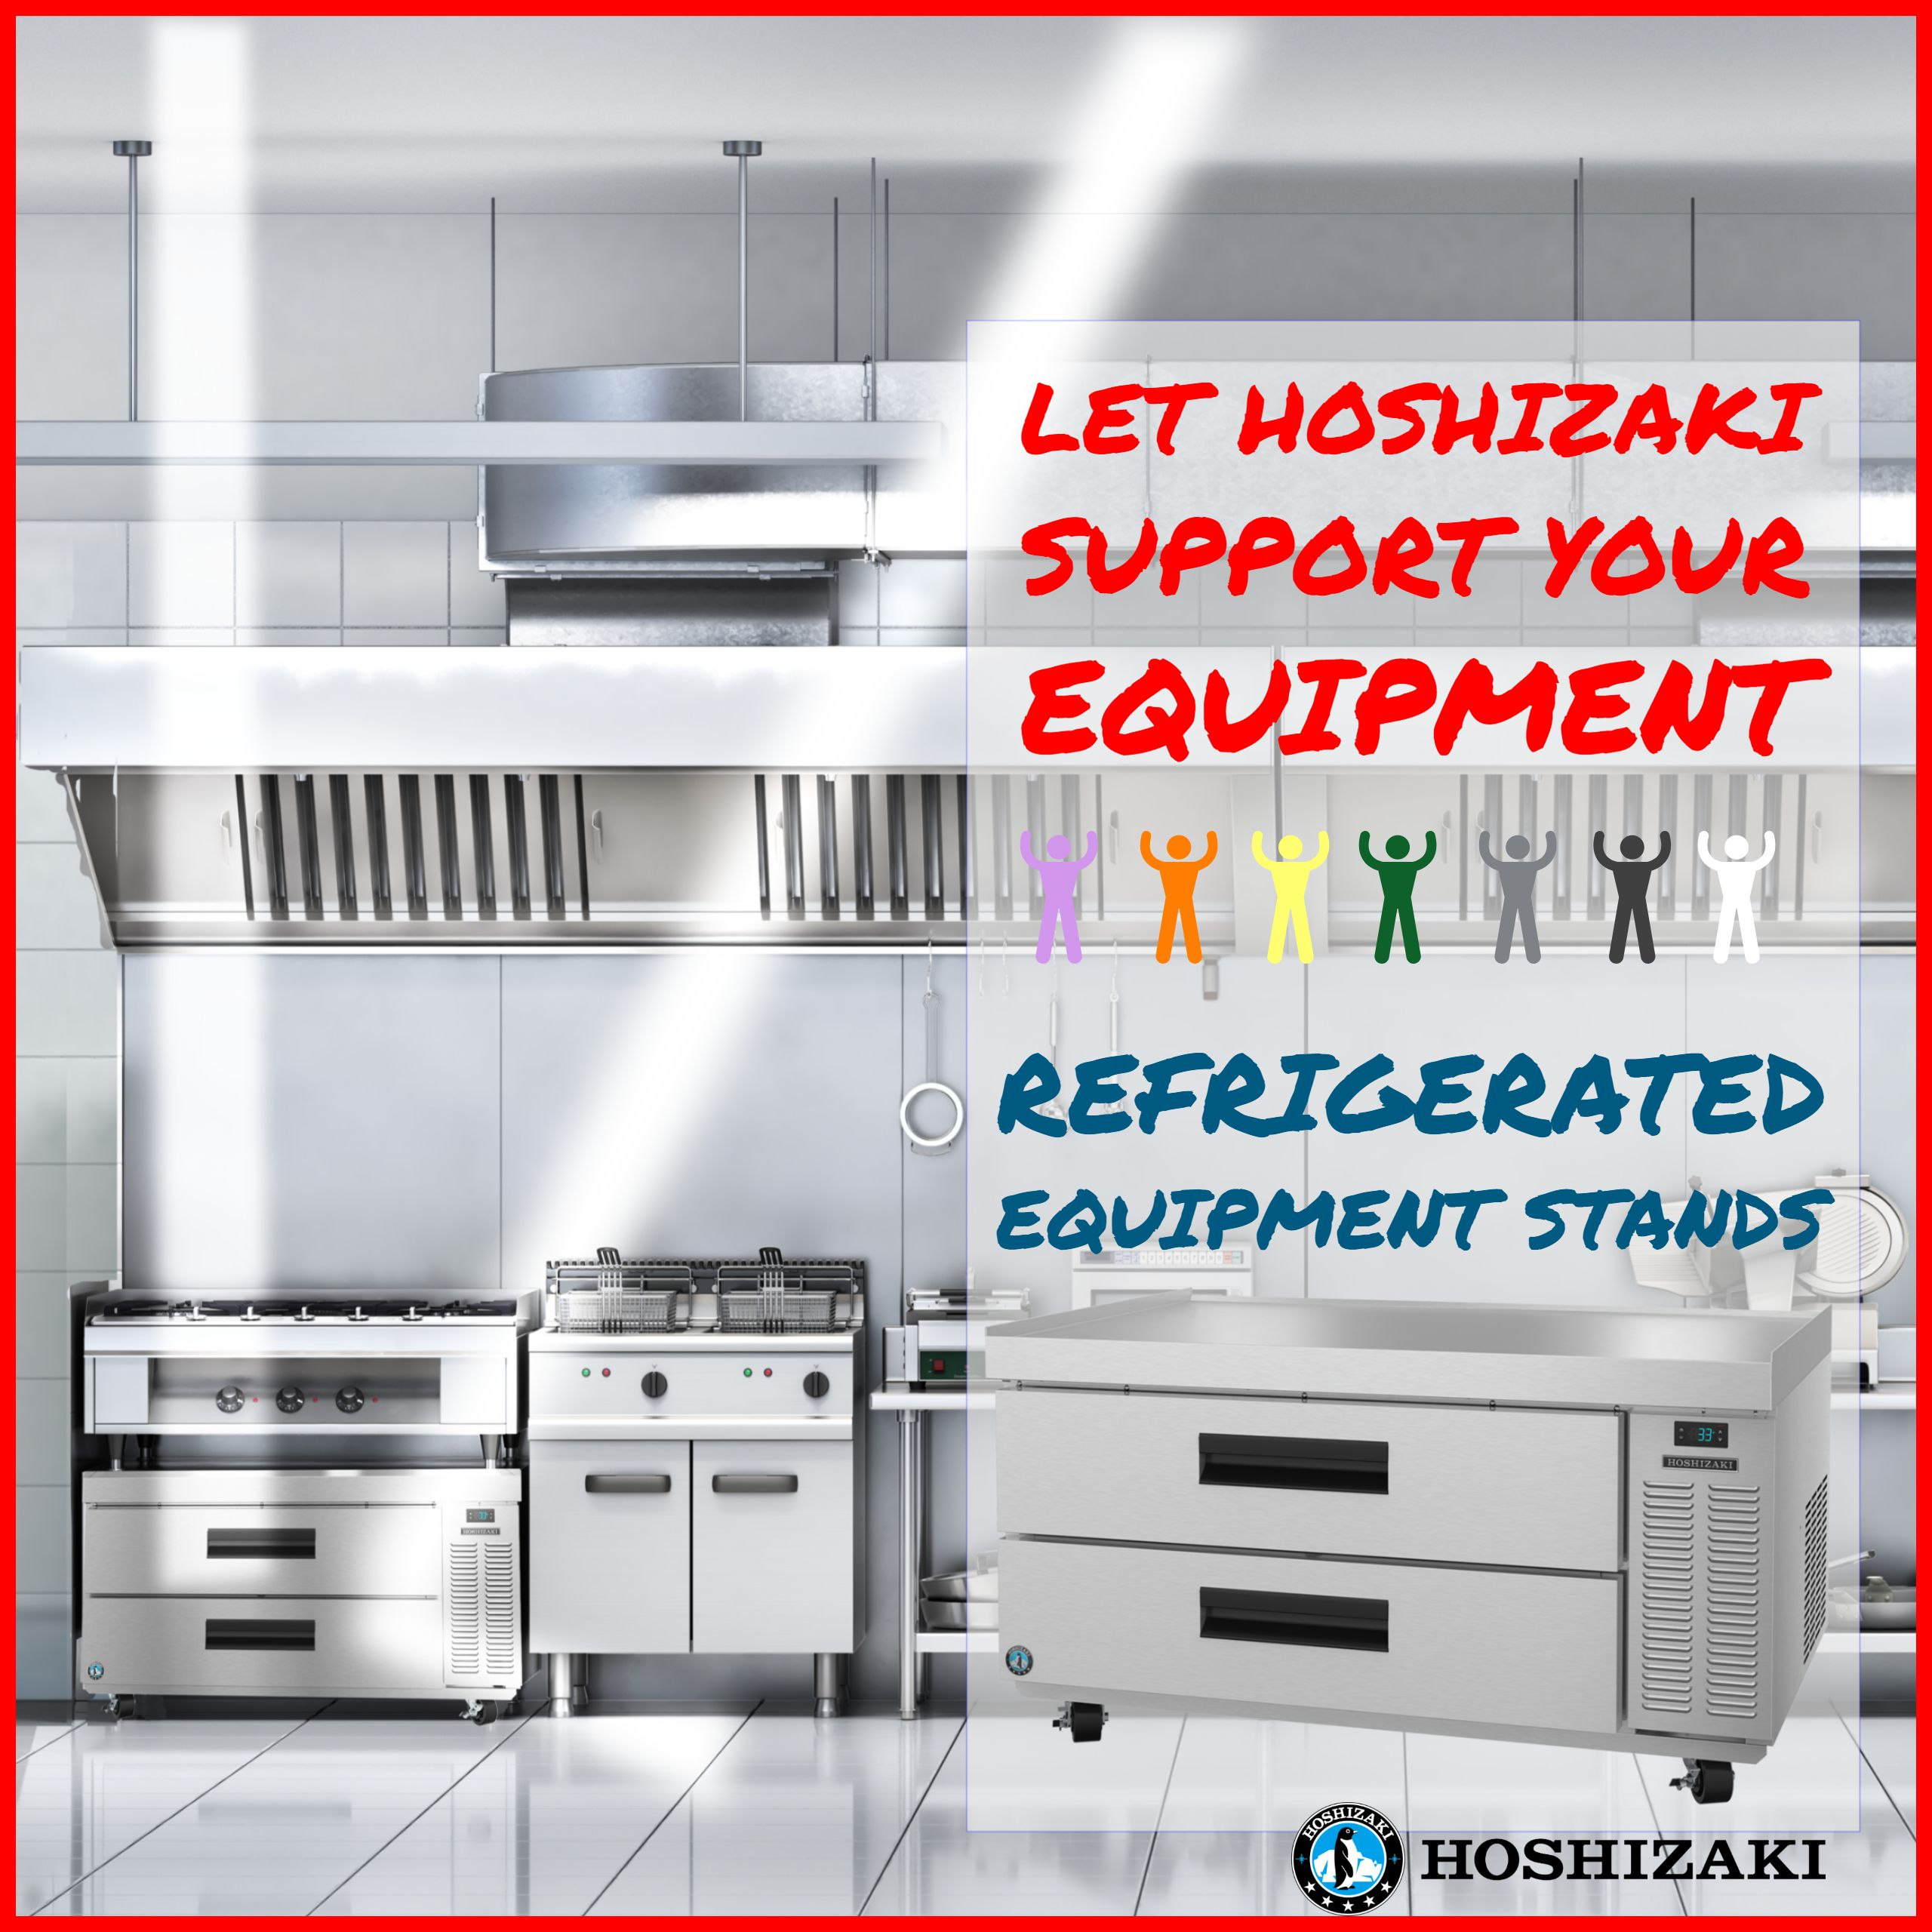 HOSHIZAKI Refrigerated Equipment Stands are Built Beyond Strong ...